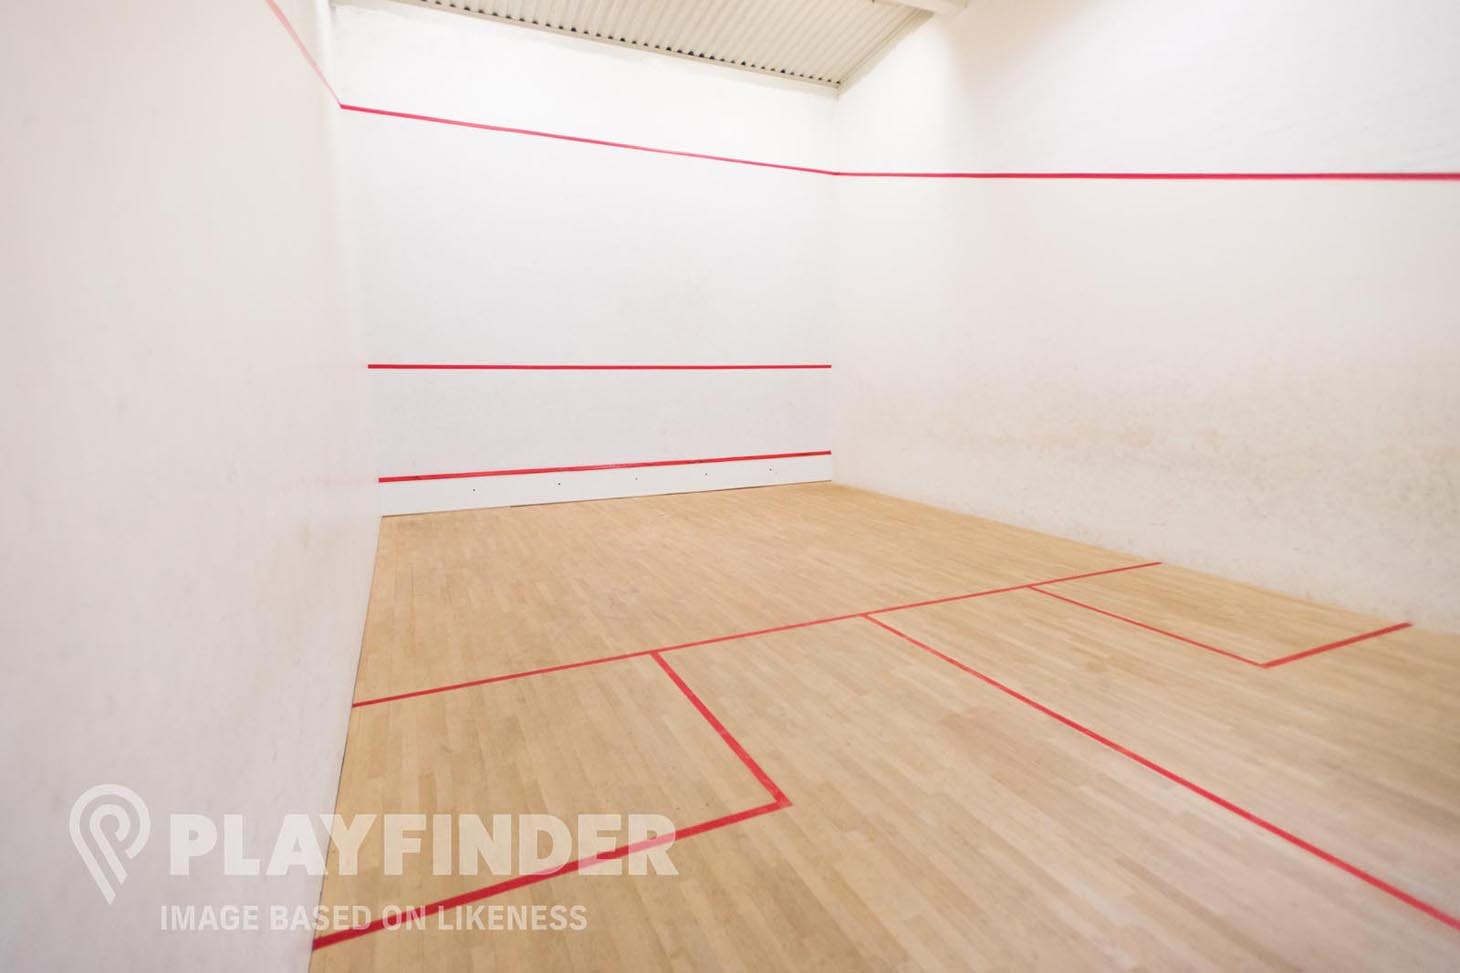 Hough End Leisure Centre Indoor | Hard squash court